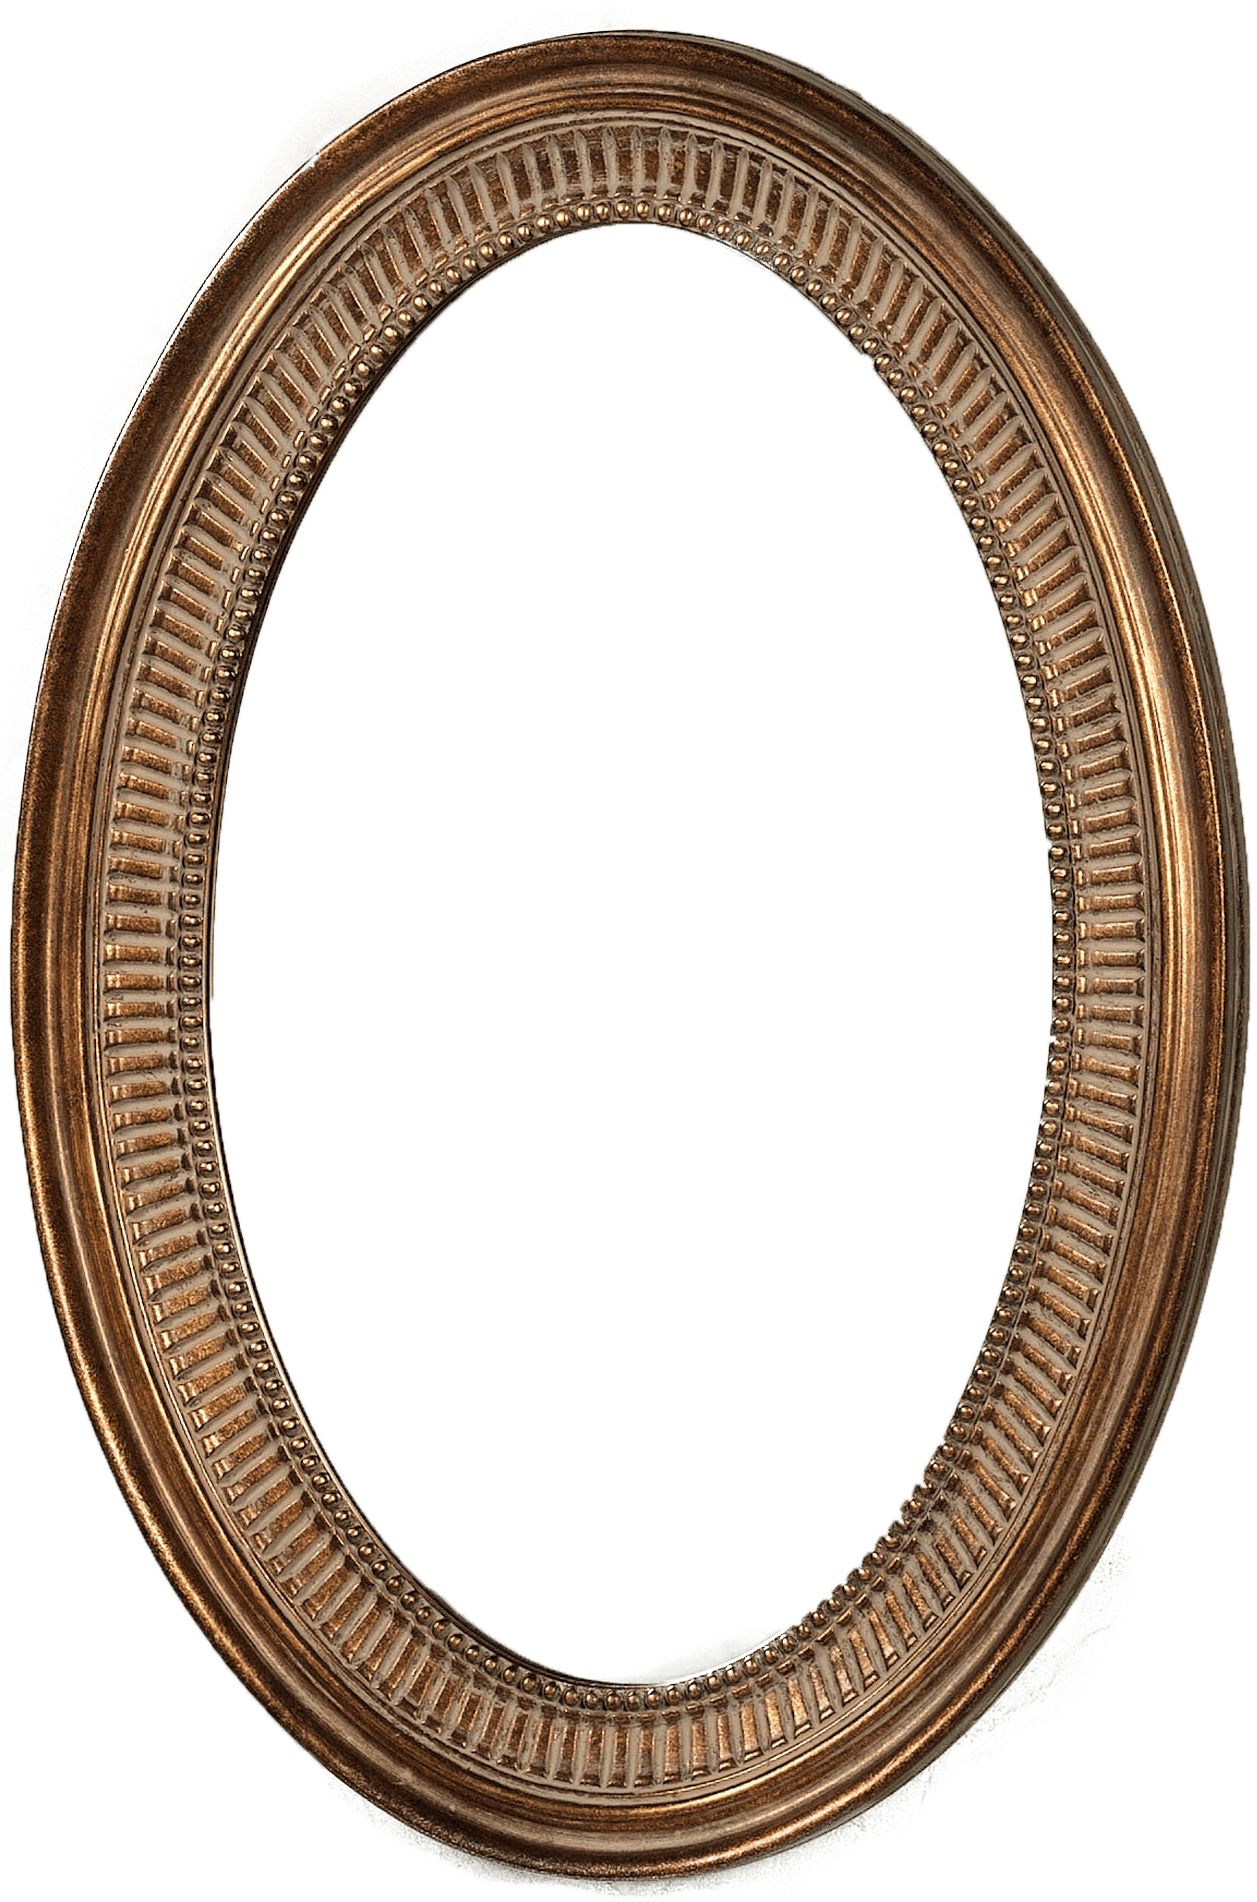 Oval frame png. Simple photos